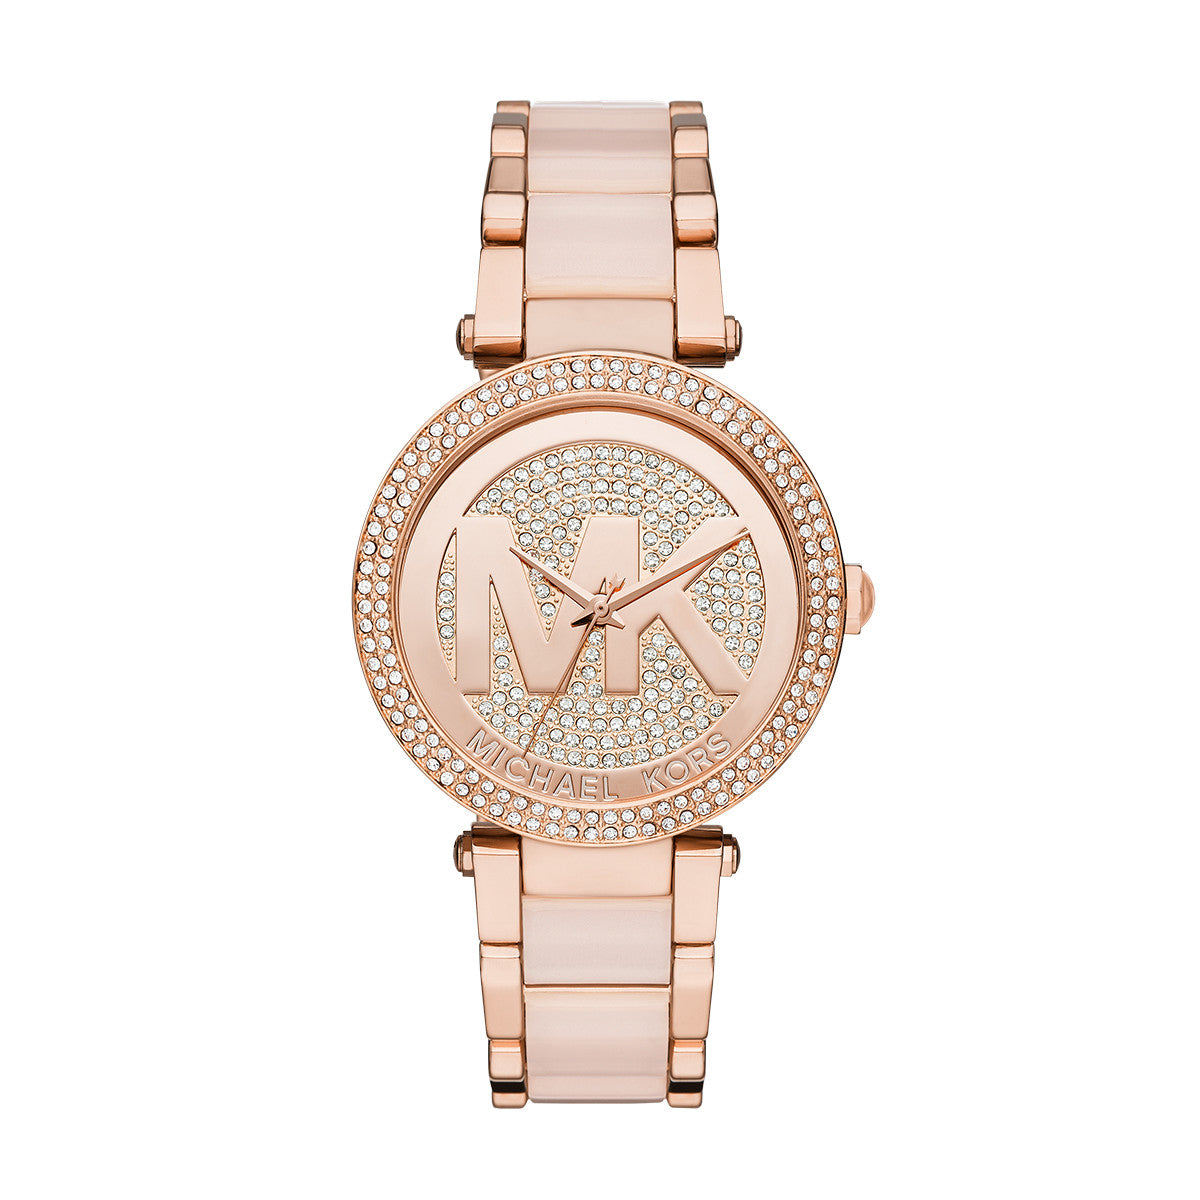 Parker Blush Acetate and Rose Gold-Tone Stainless Steel Watch